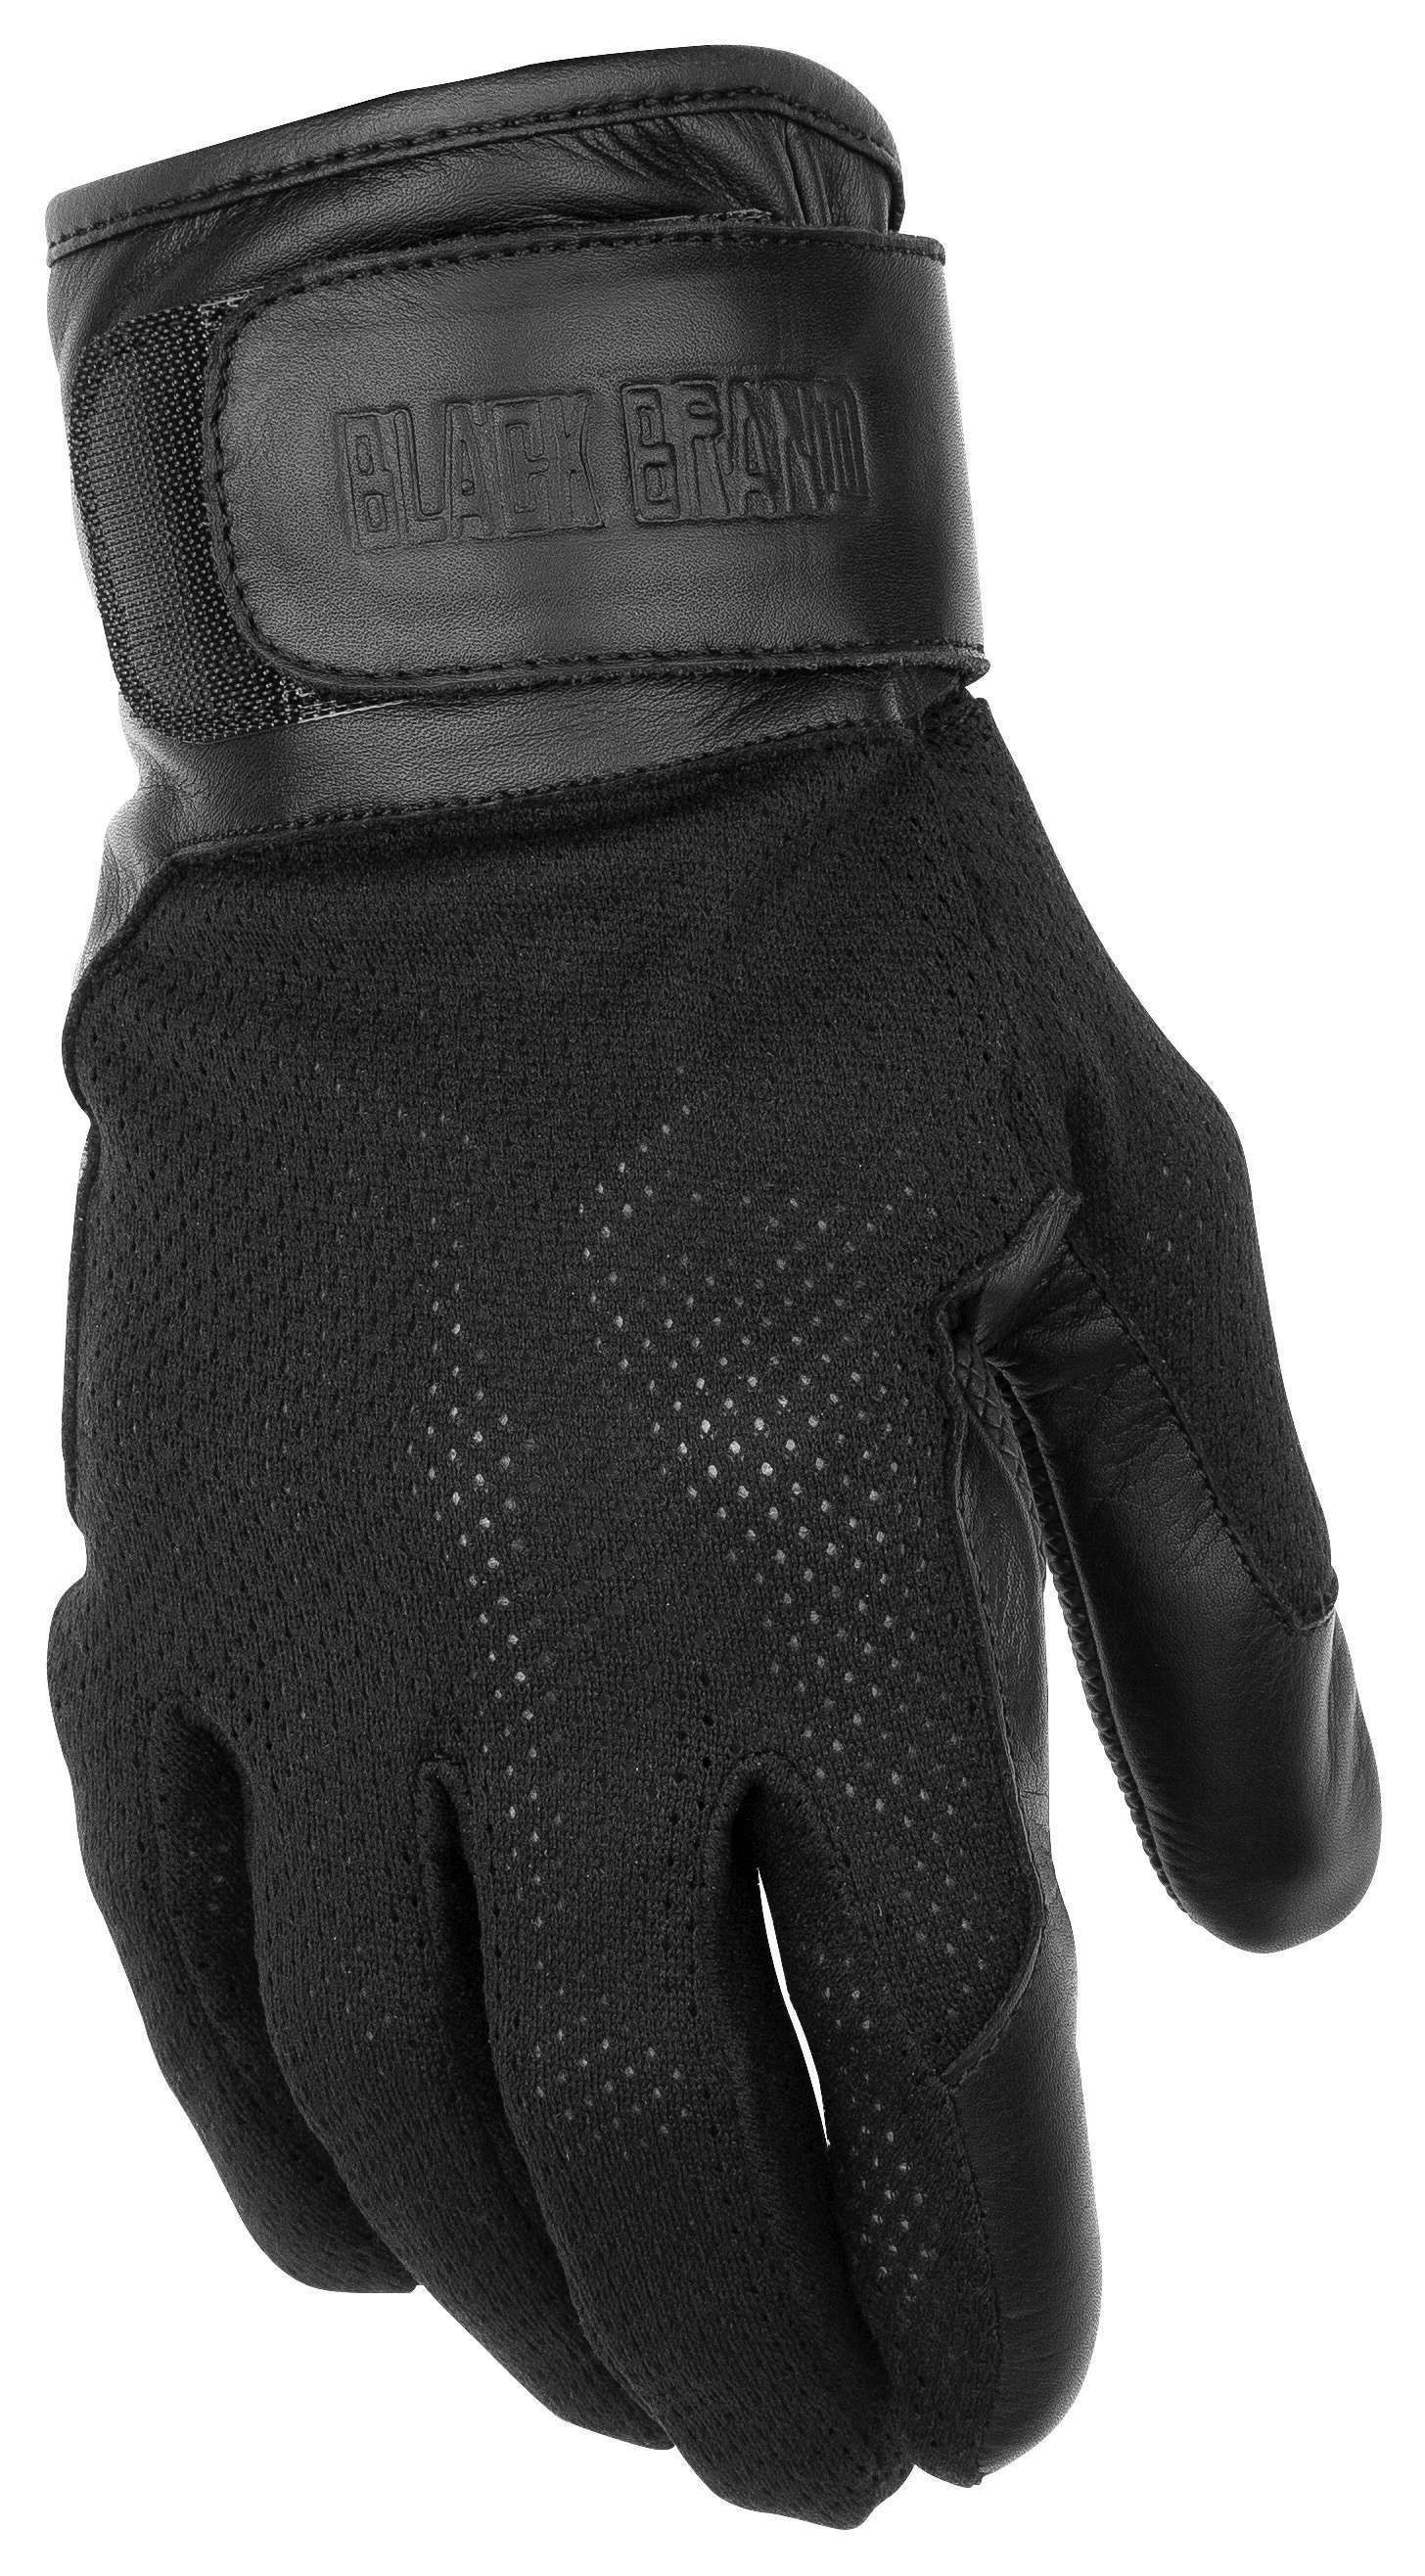 Motorcycle gloves mesh - Motorcycle Gloves Mesh 17